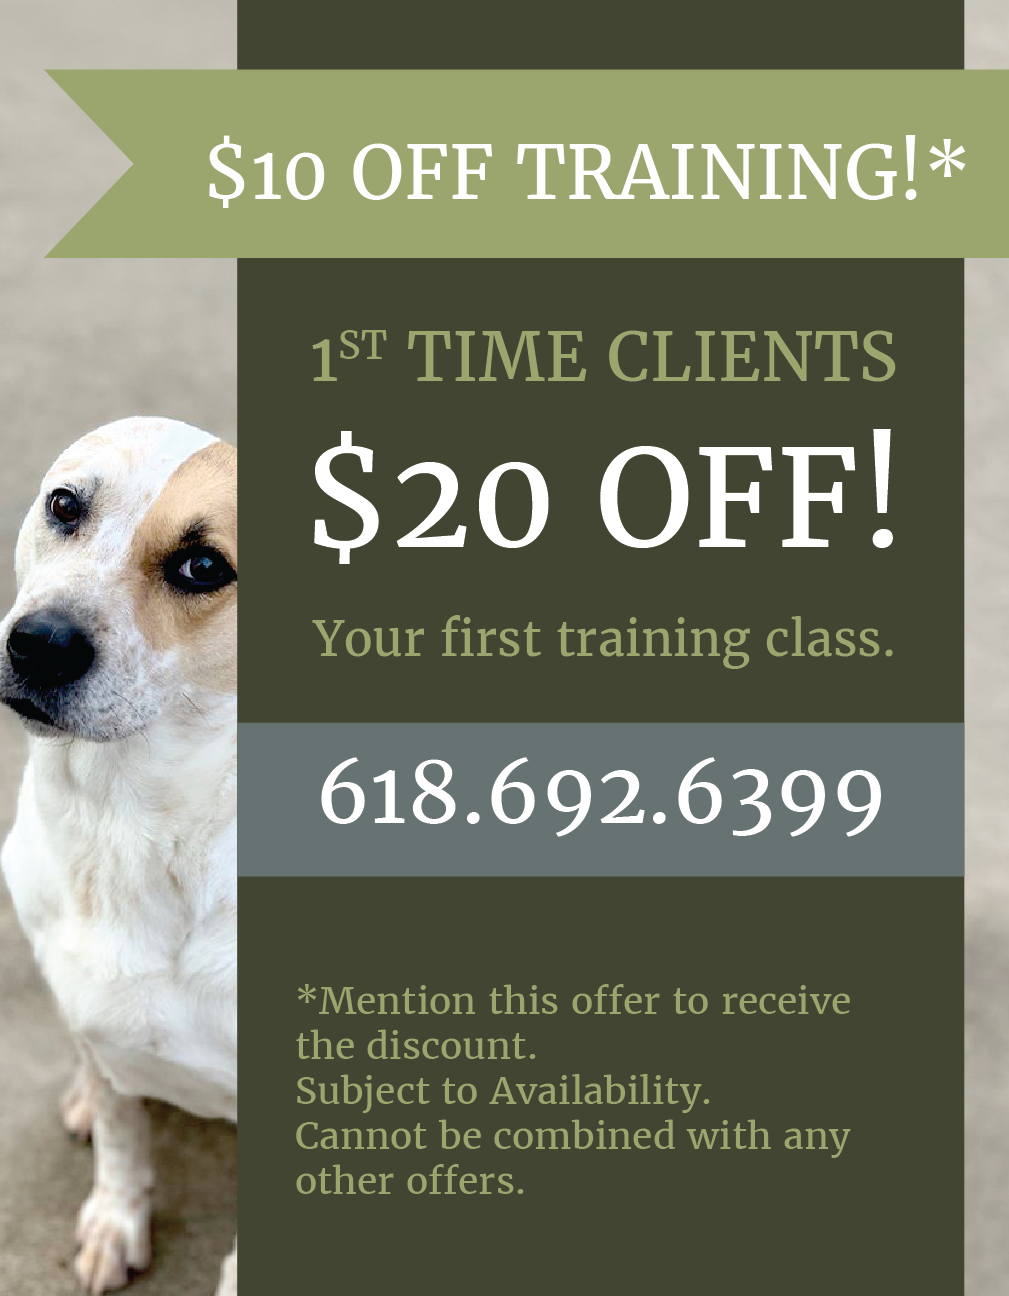 Special Training Offer from LaBest Pet Resort and Spa